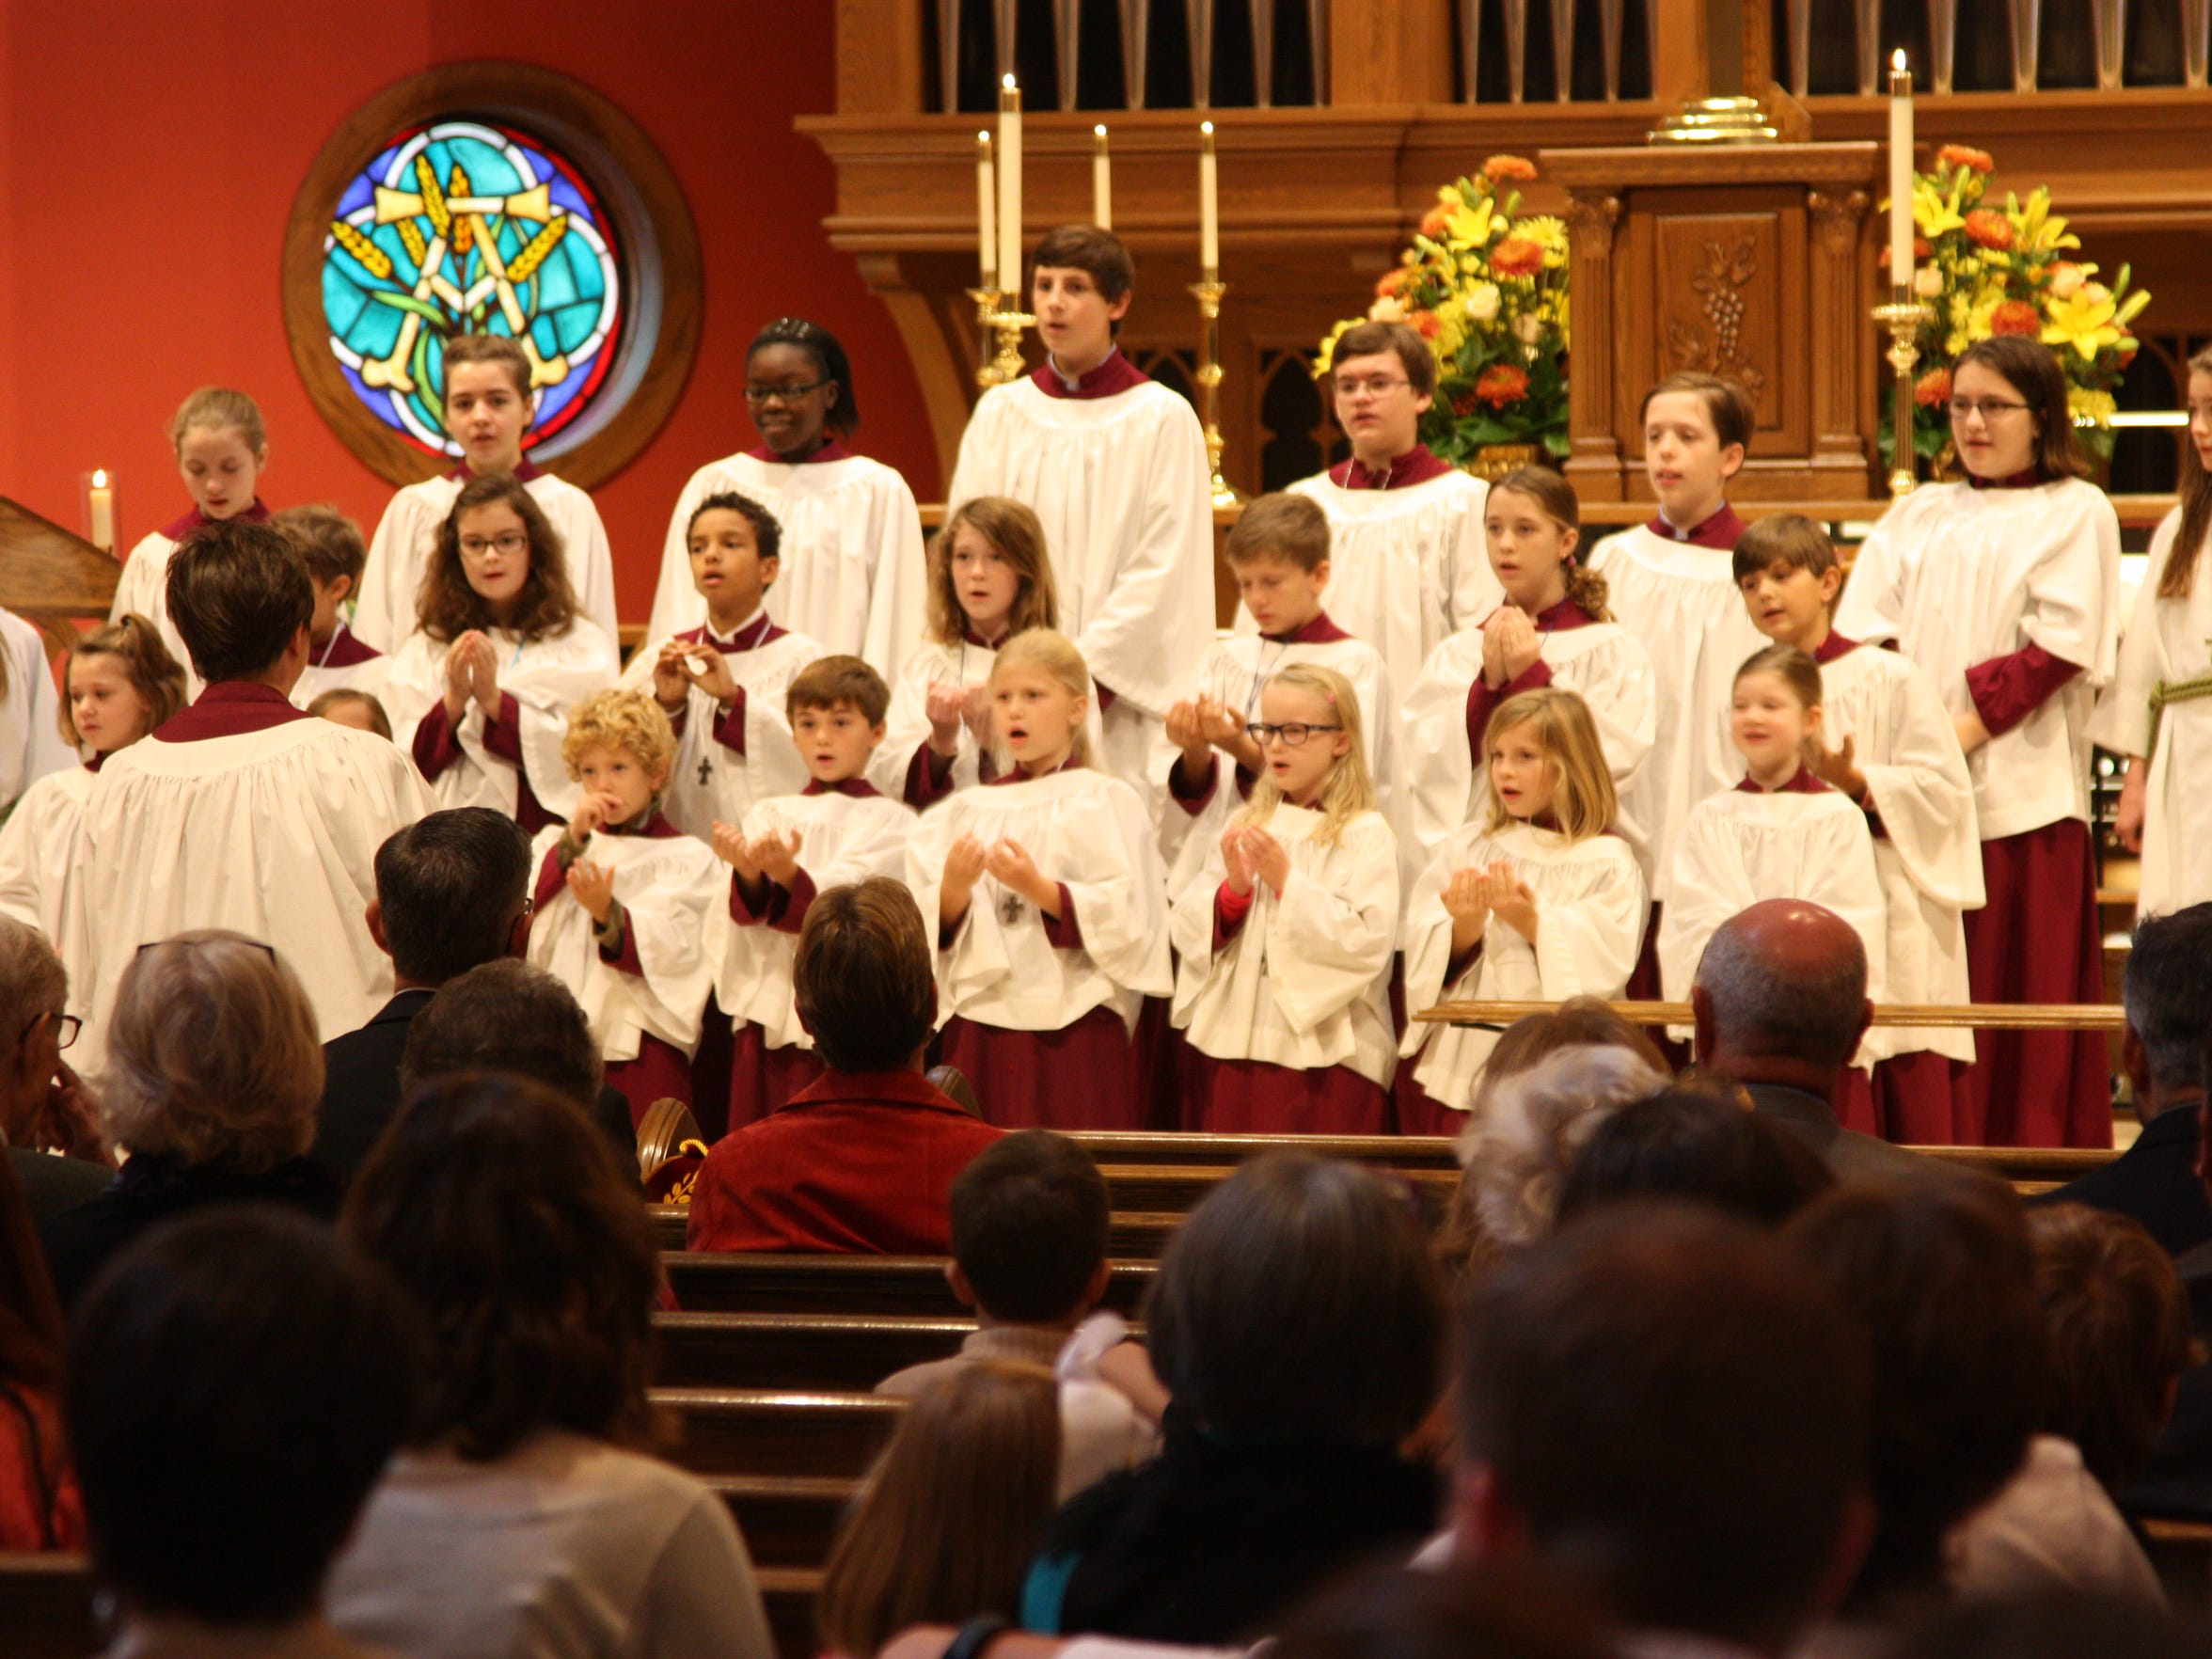 St. Paul's Episcopal Church in Murfreesboro will host Lessons and Carols.